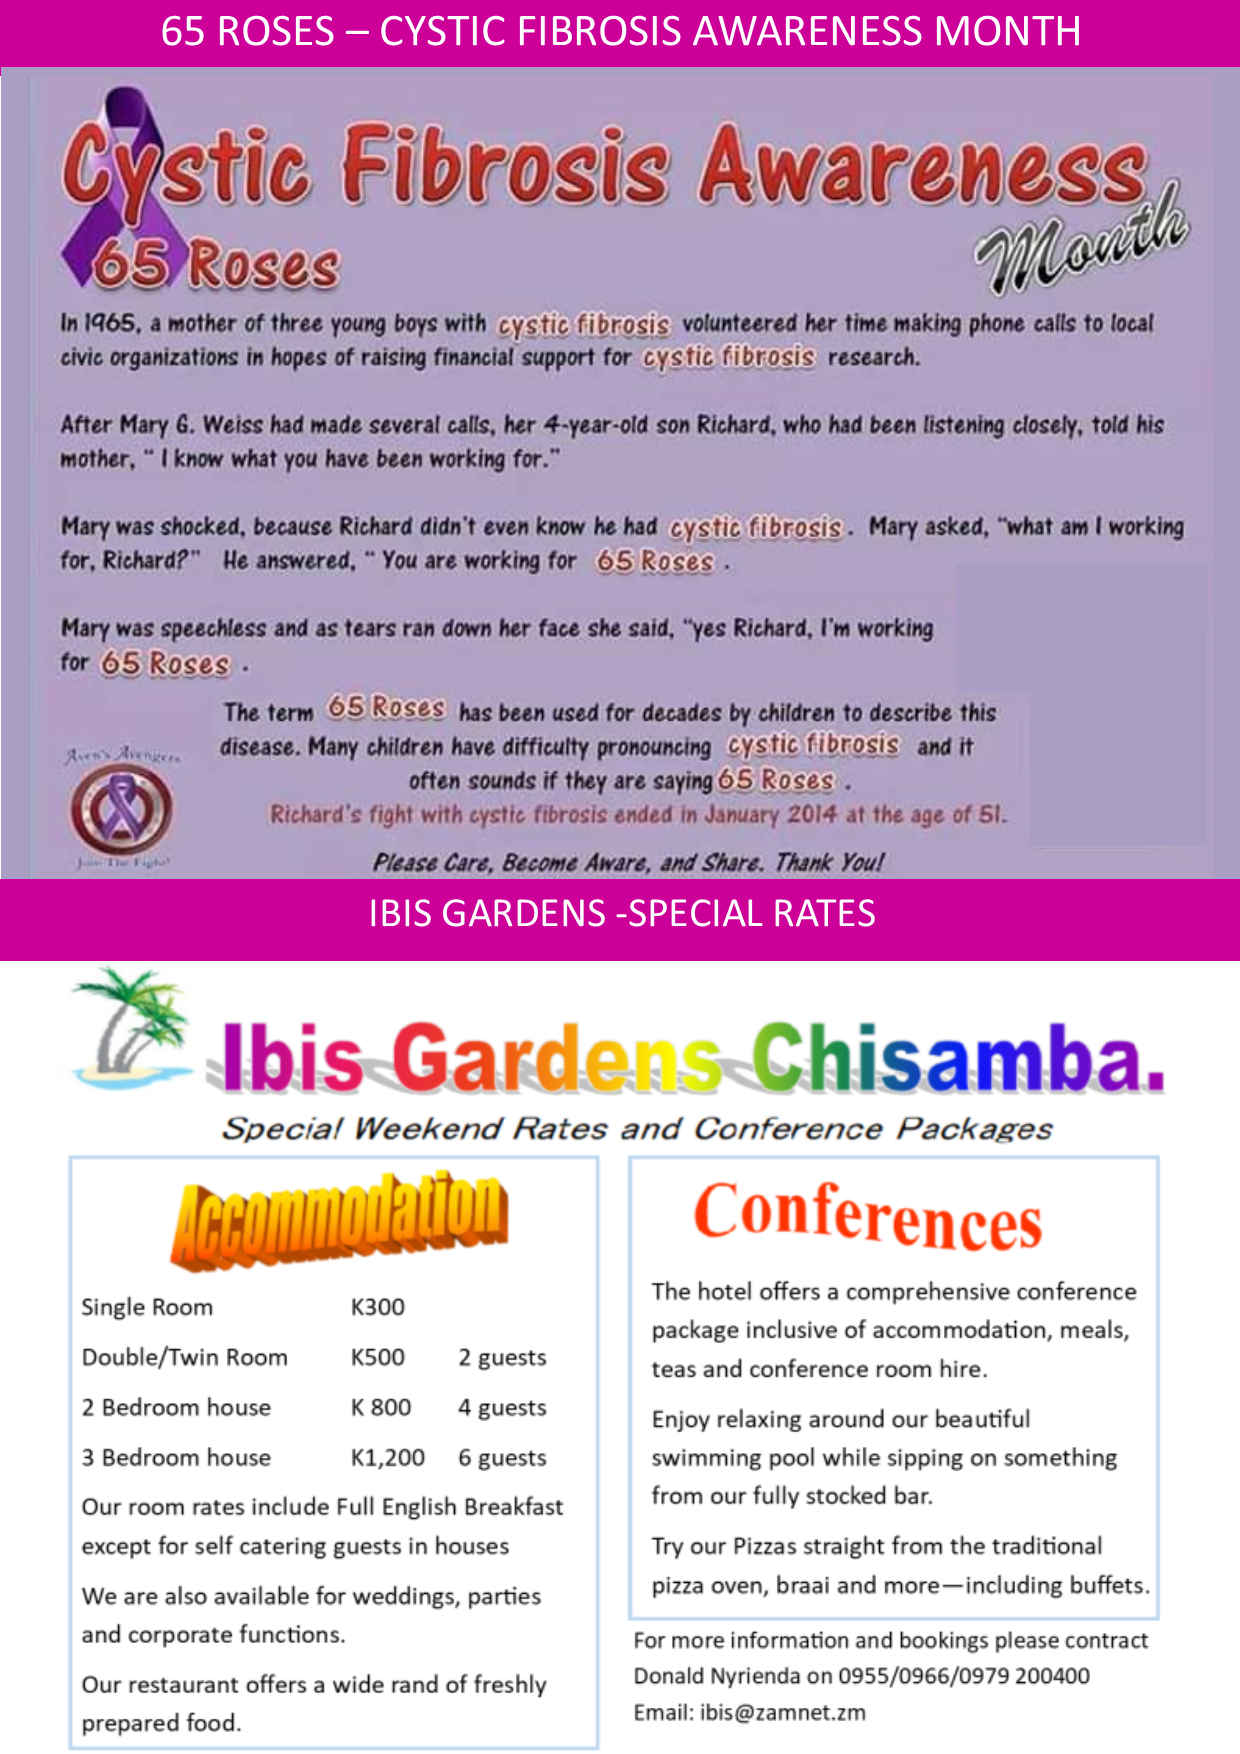 22 05 2019 - 65 ROSES / IBIS GARDEN'S SPECIAL RATES » Ad-dicts Ads